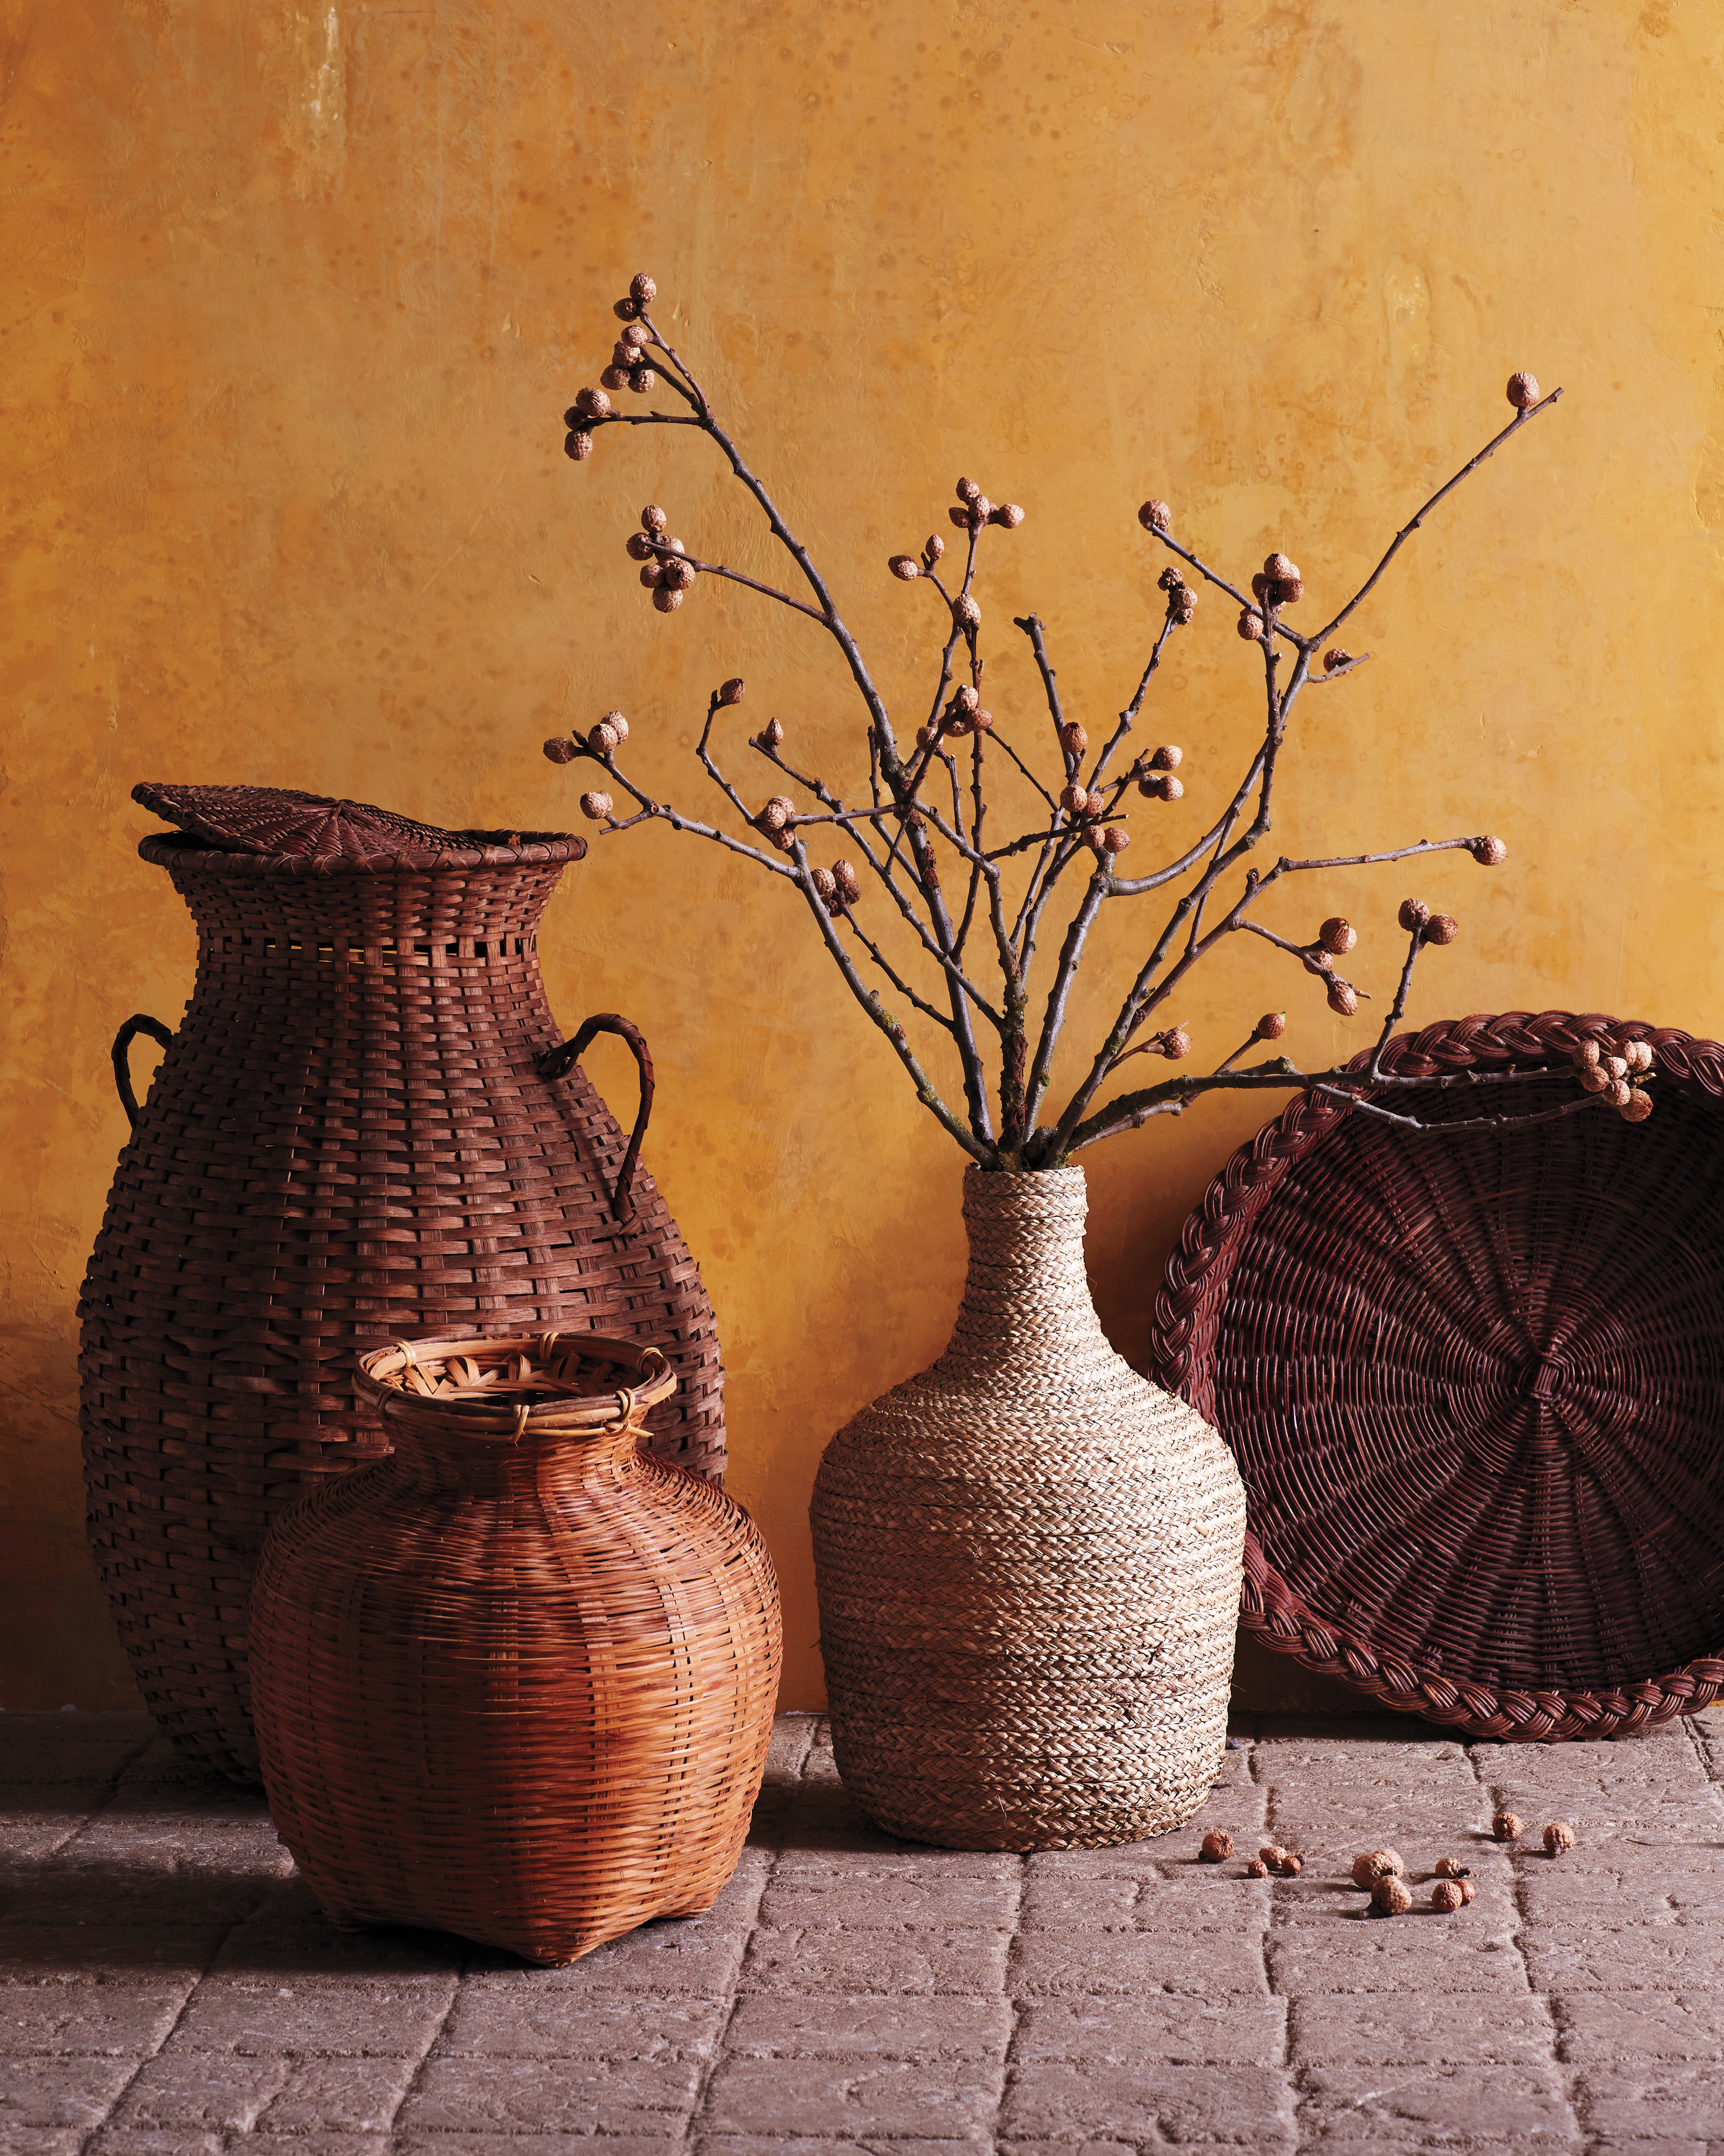 Sweetgrass Basketry